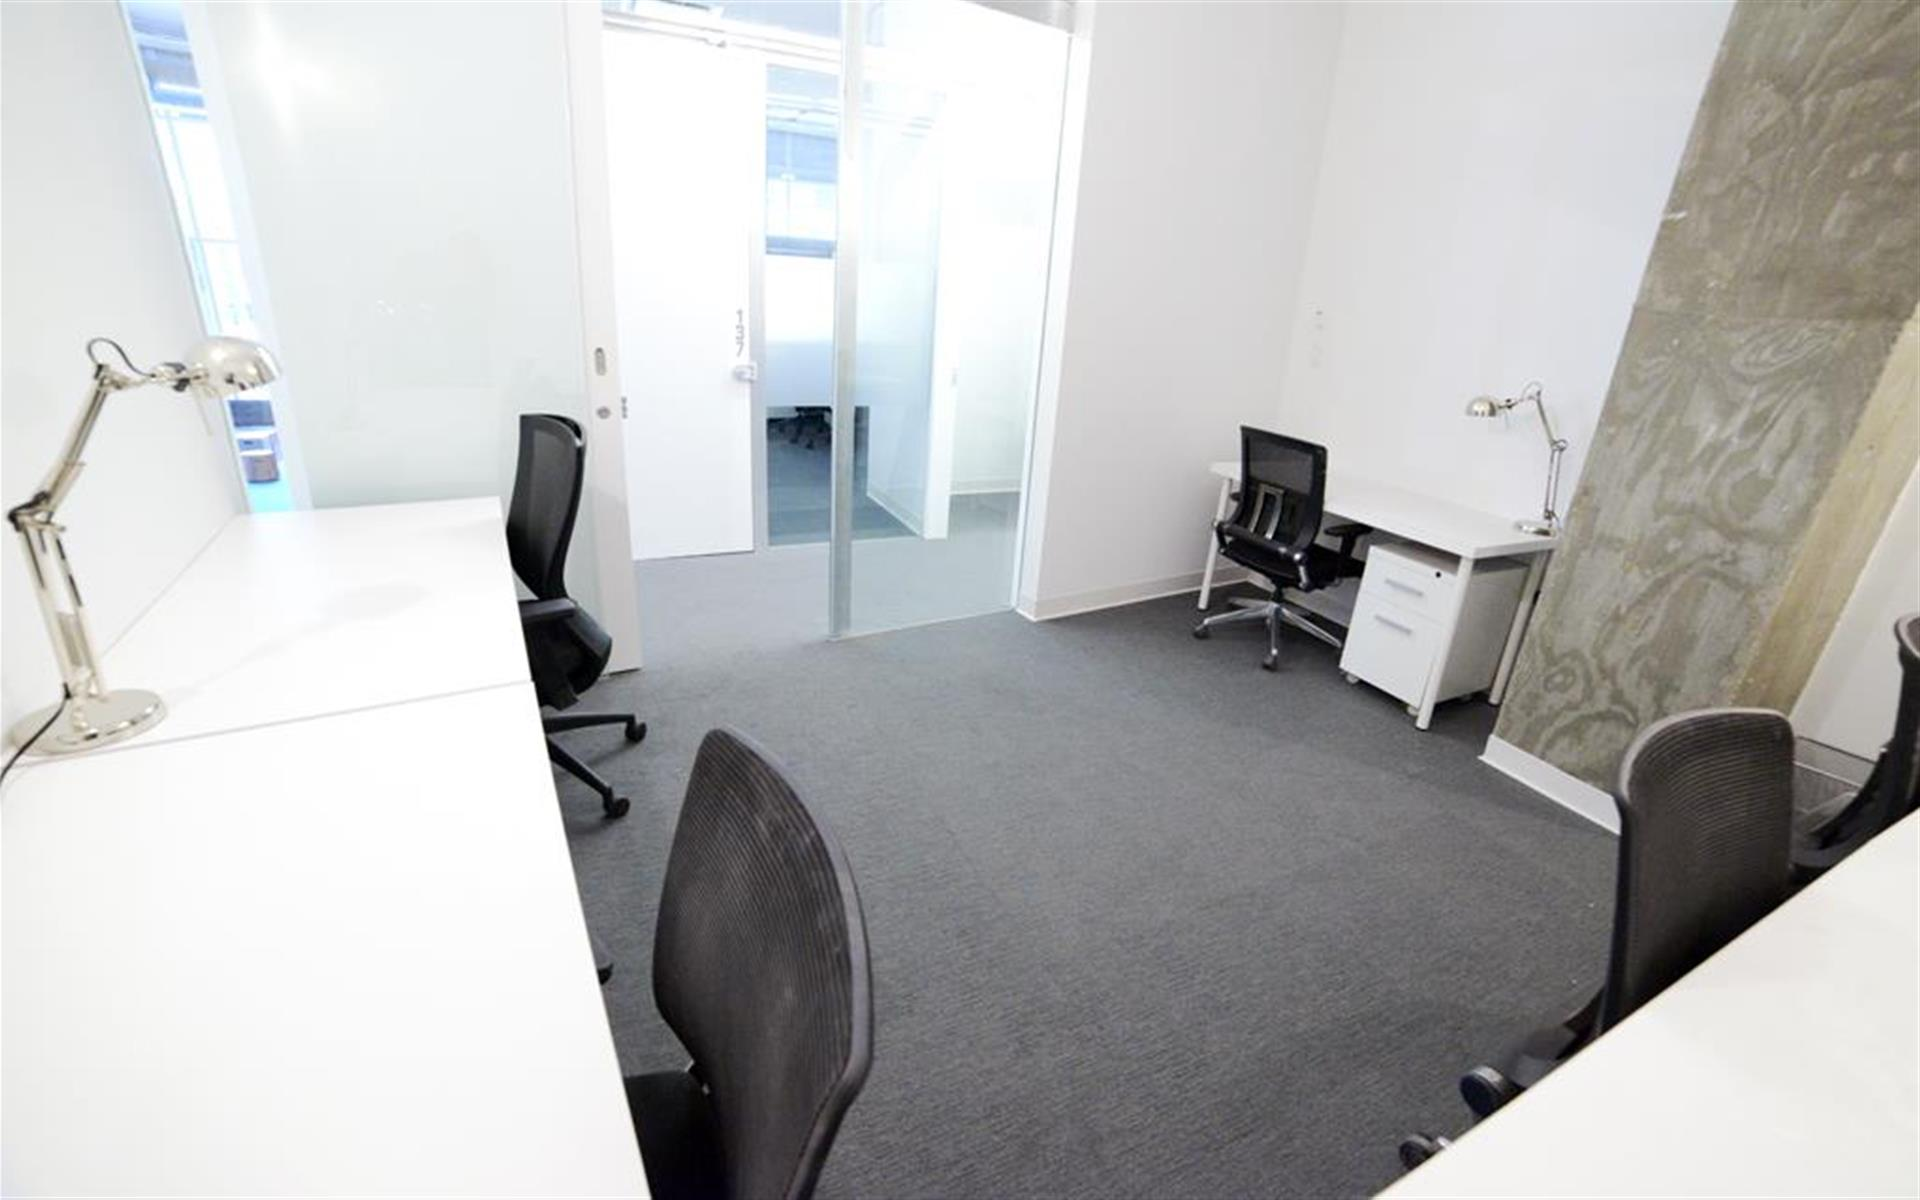 The Yard: Herald Square - 5-Person Team Office